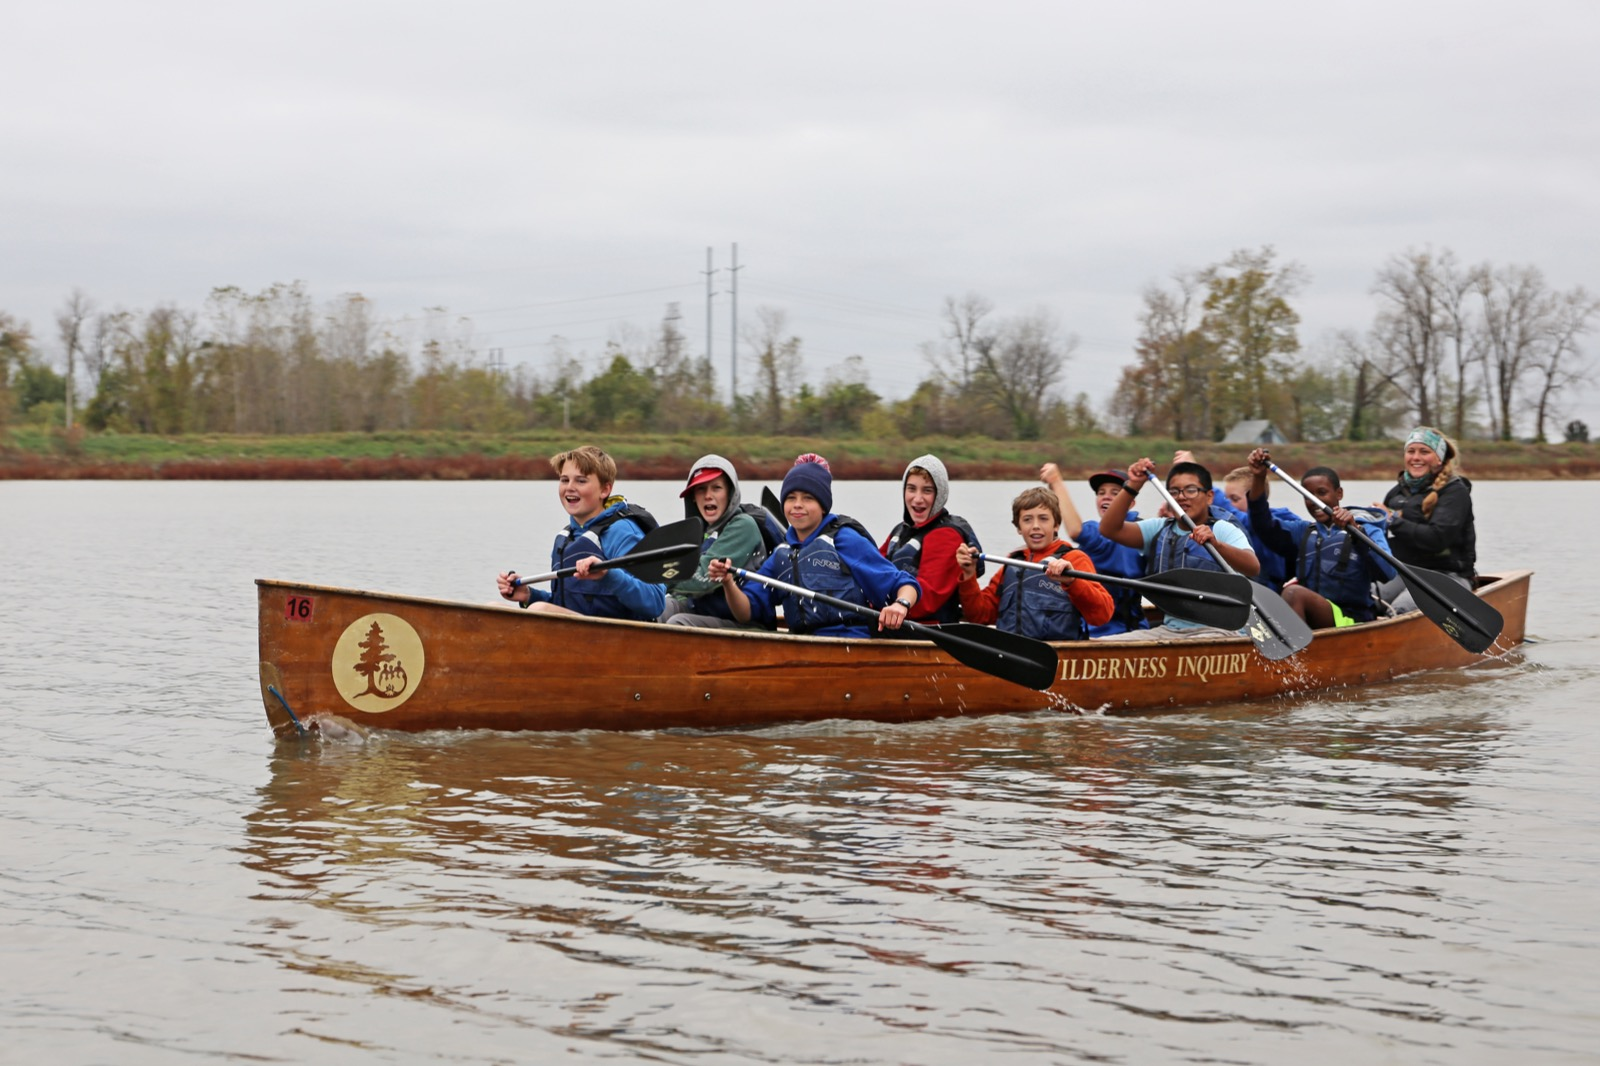 Maplewood-Richmond Heights Middle School paddling